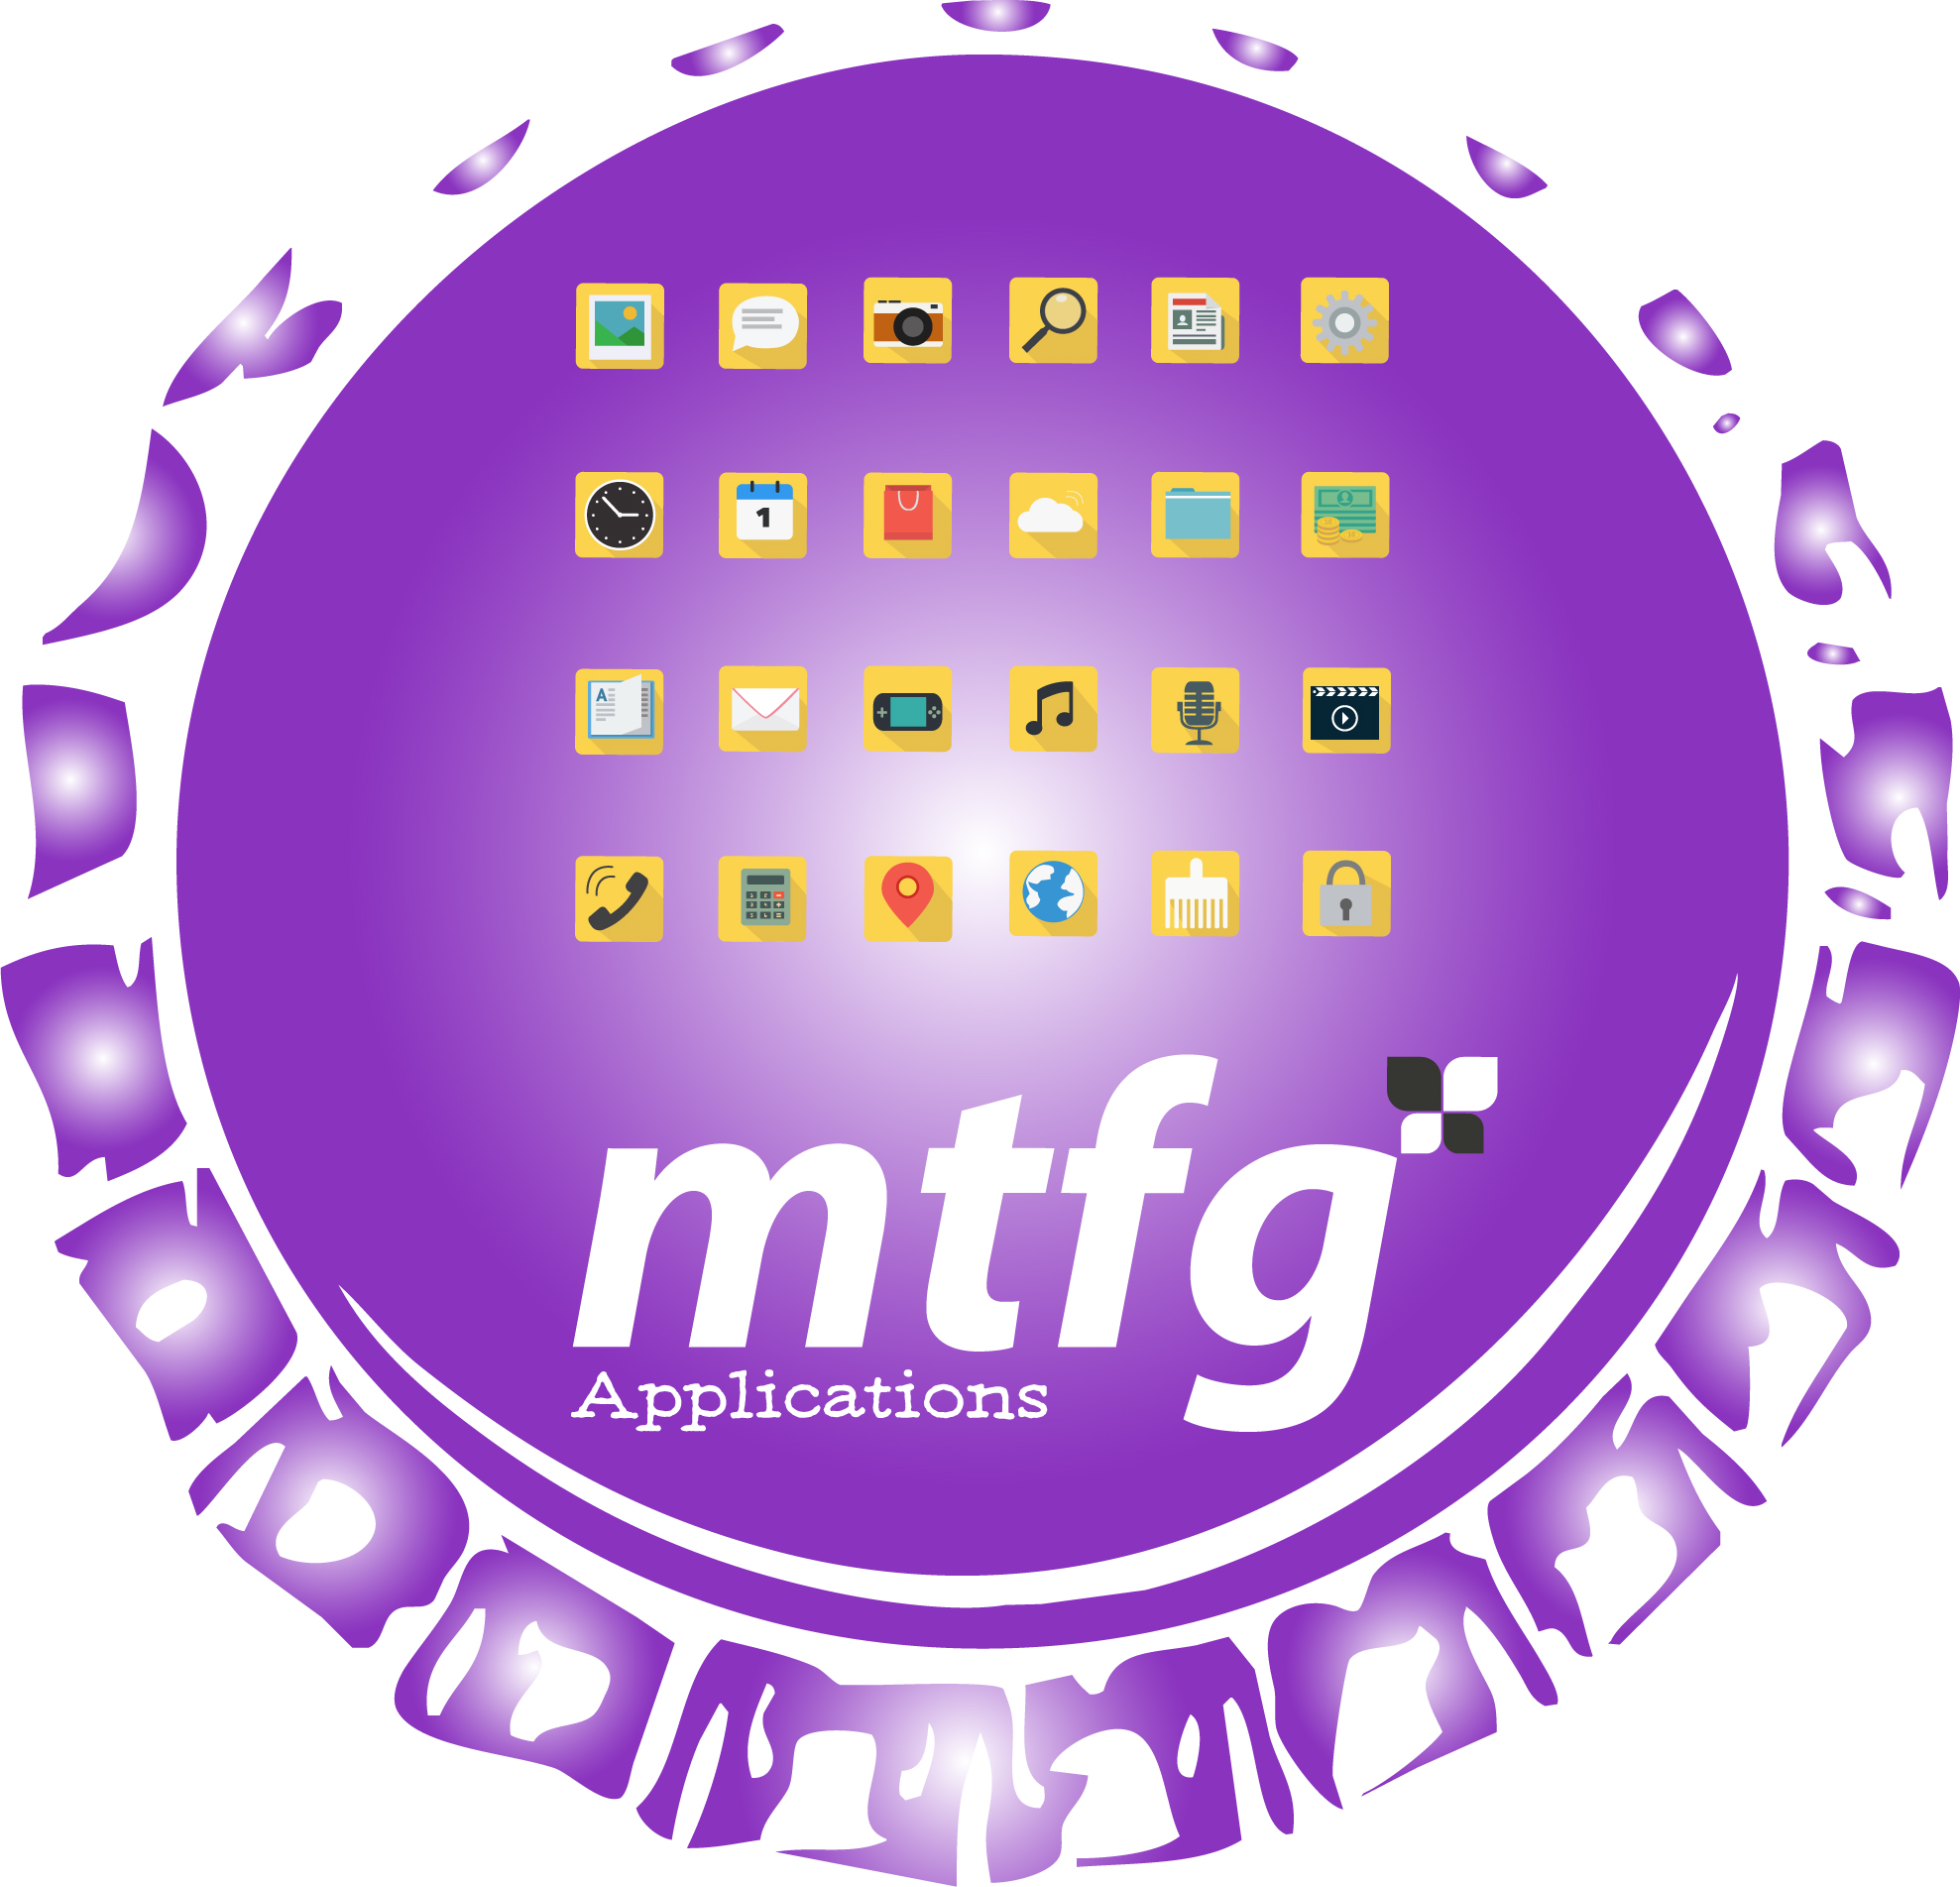 MTFG Applications